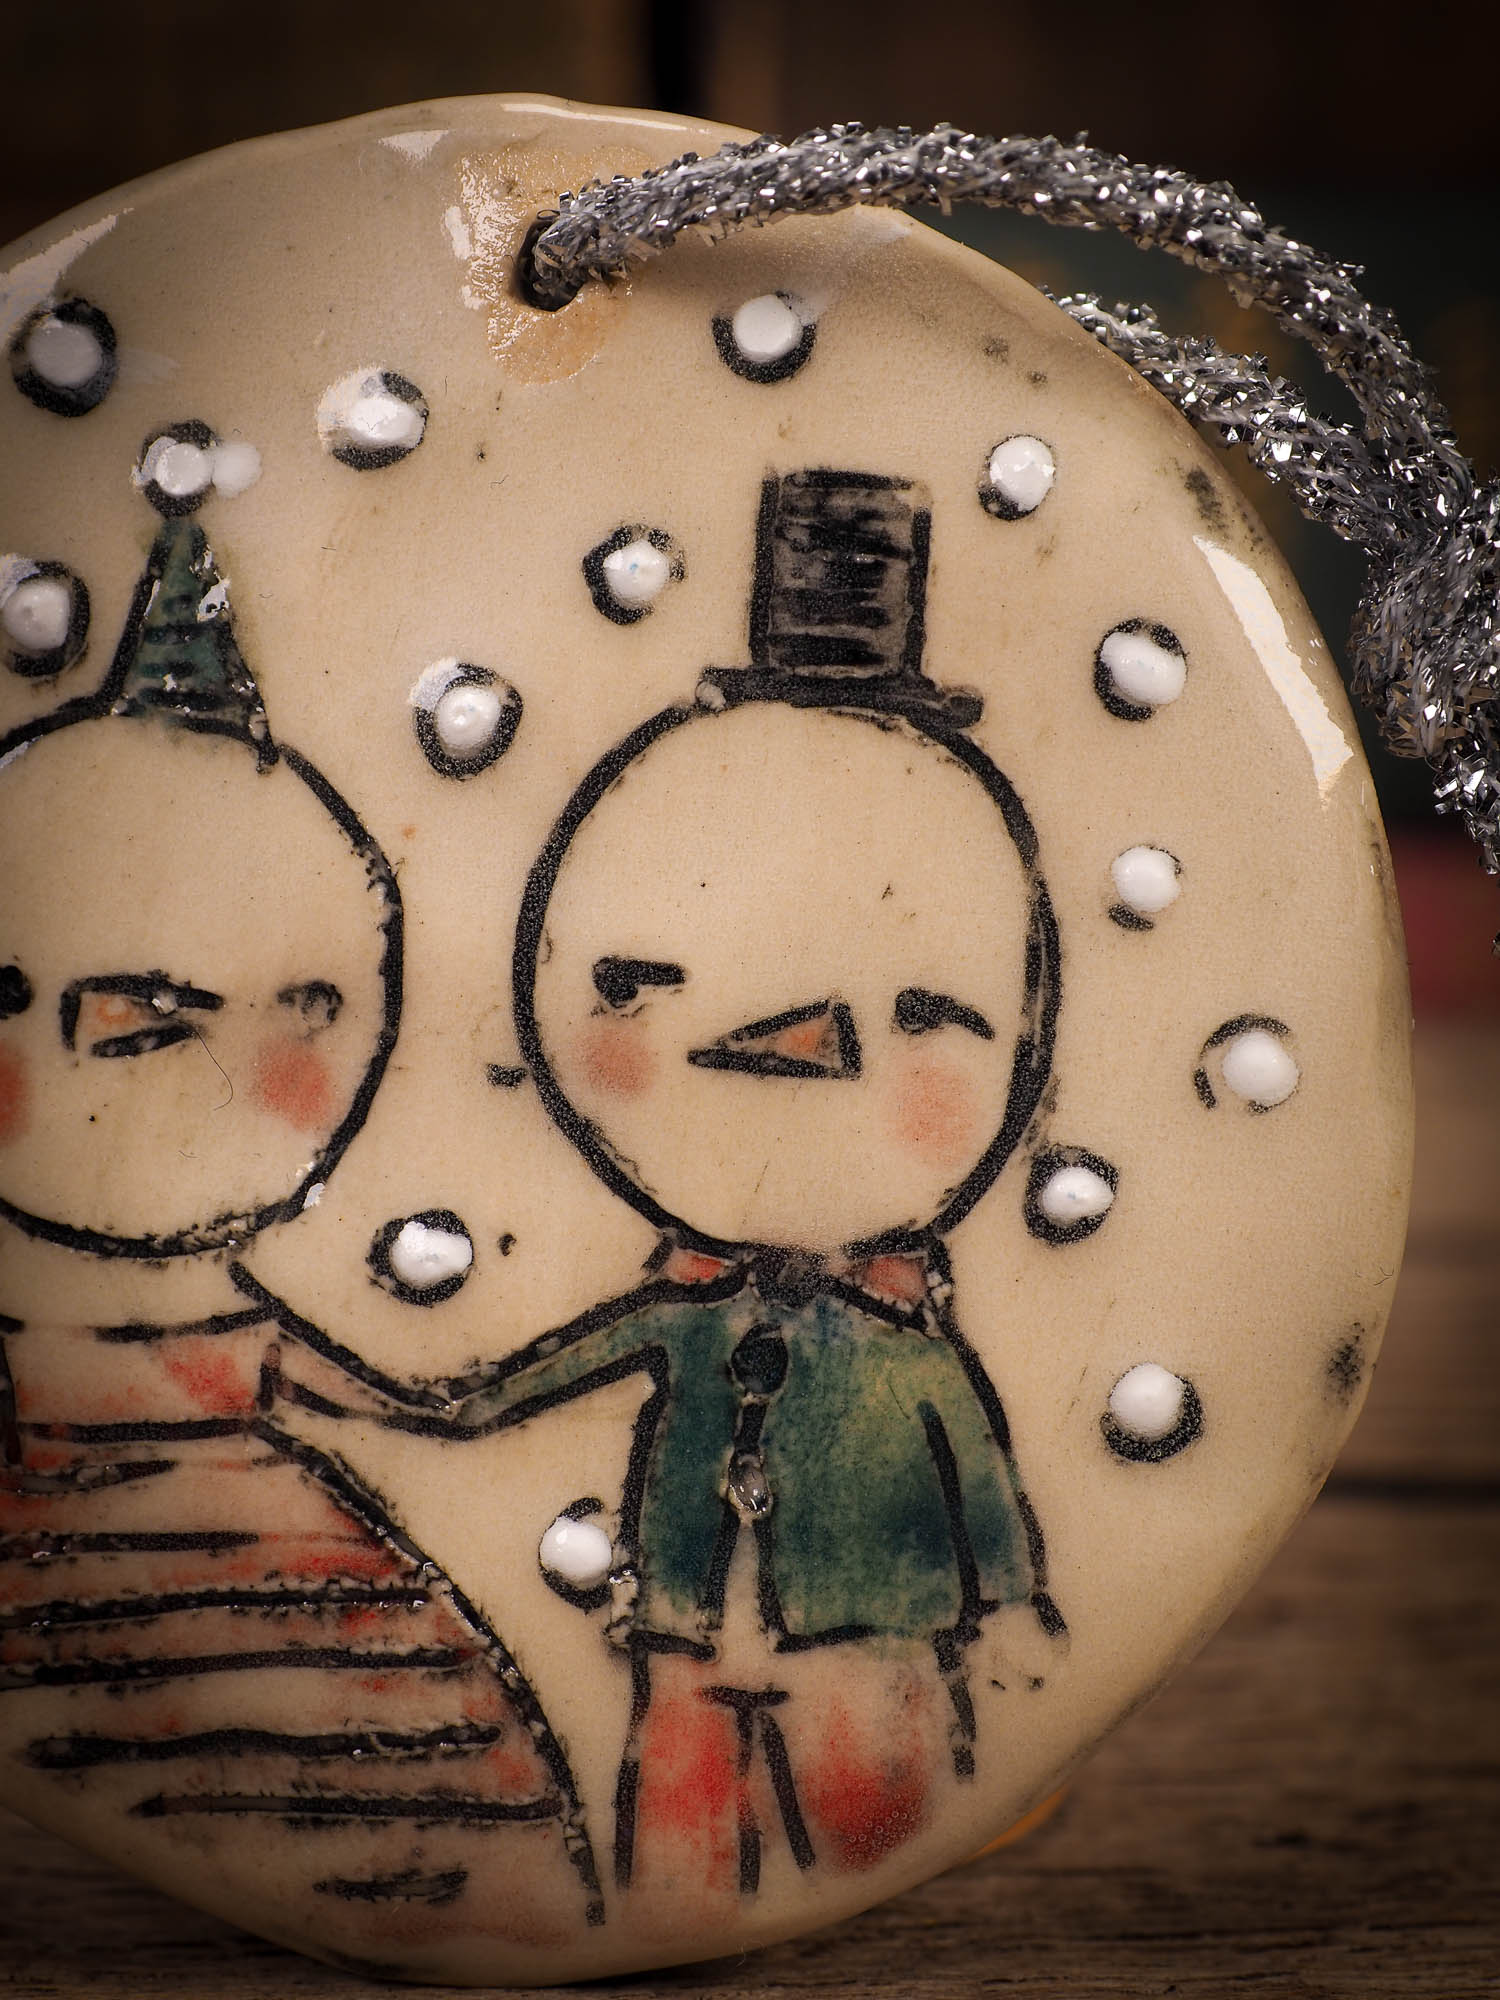 An original Christmas Holiday tree round glazed ceramic ornament handmade by Idania Salcido, the artist behind Danita Art. Glazed carved sgraffito stoneware, hand painted and decorated, it is illustrated by hand with winter scenes with snowmen, Christmas trees, Santa Claus, snow balls and winter themes.